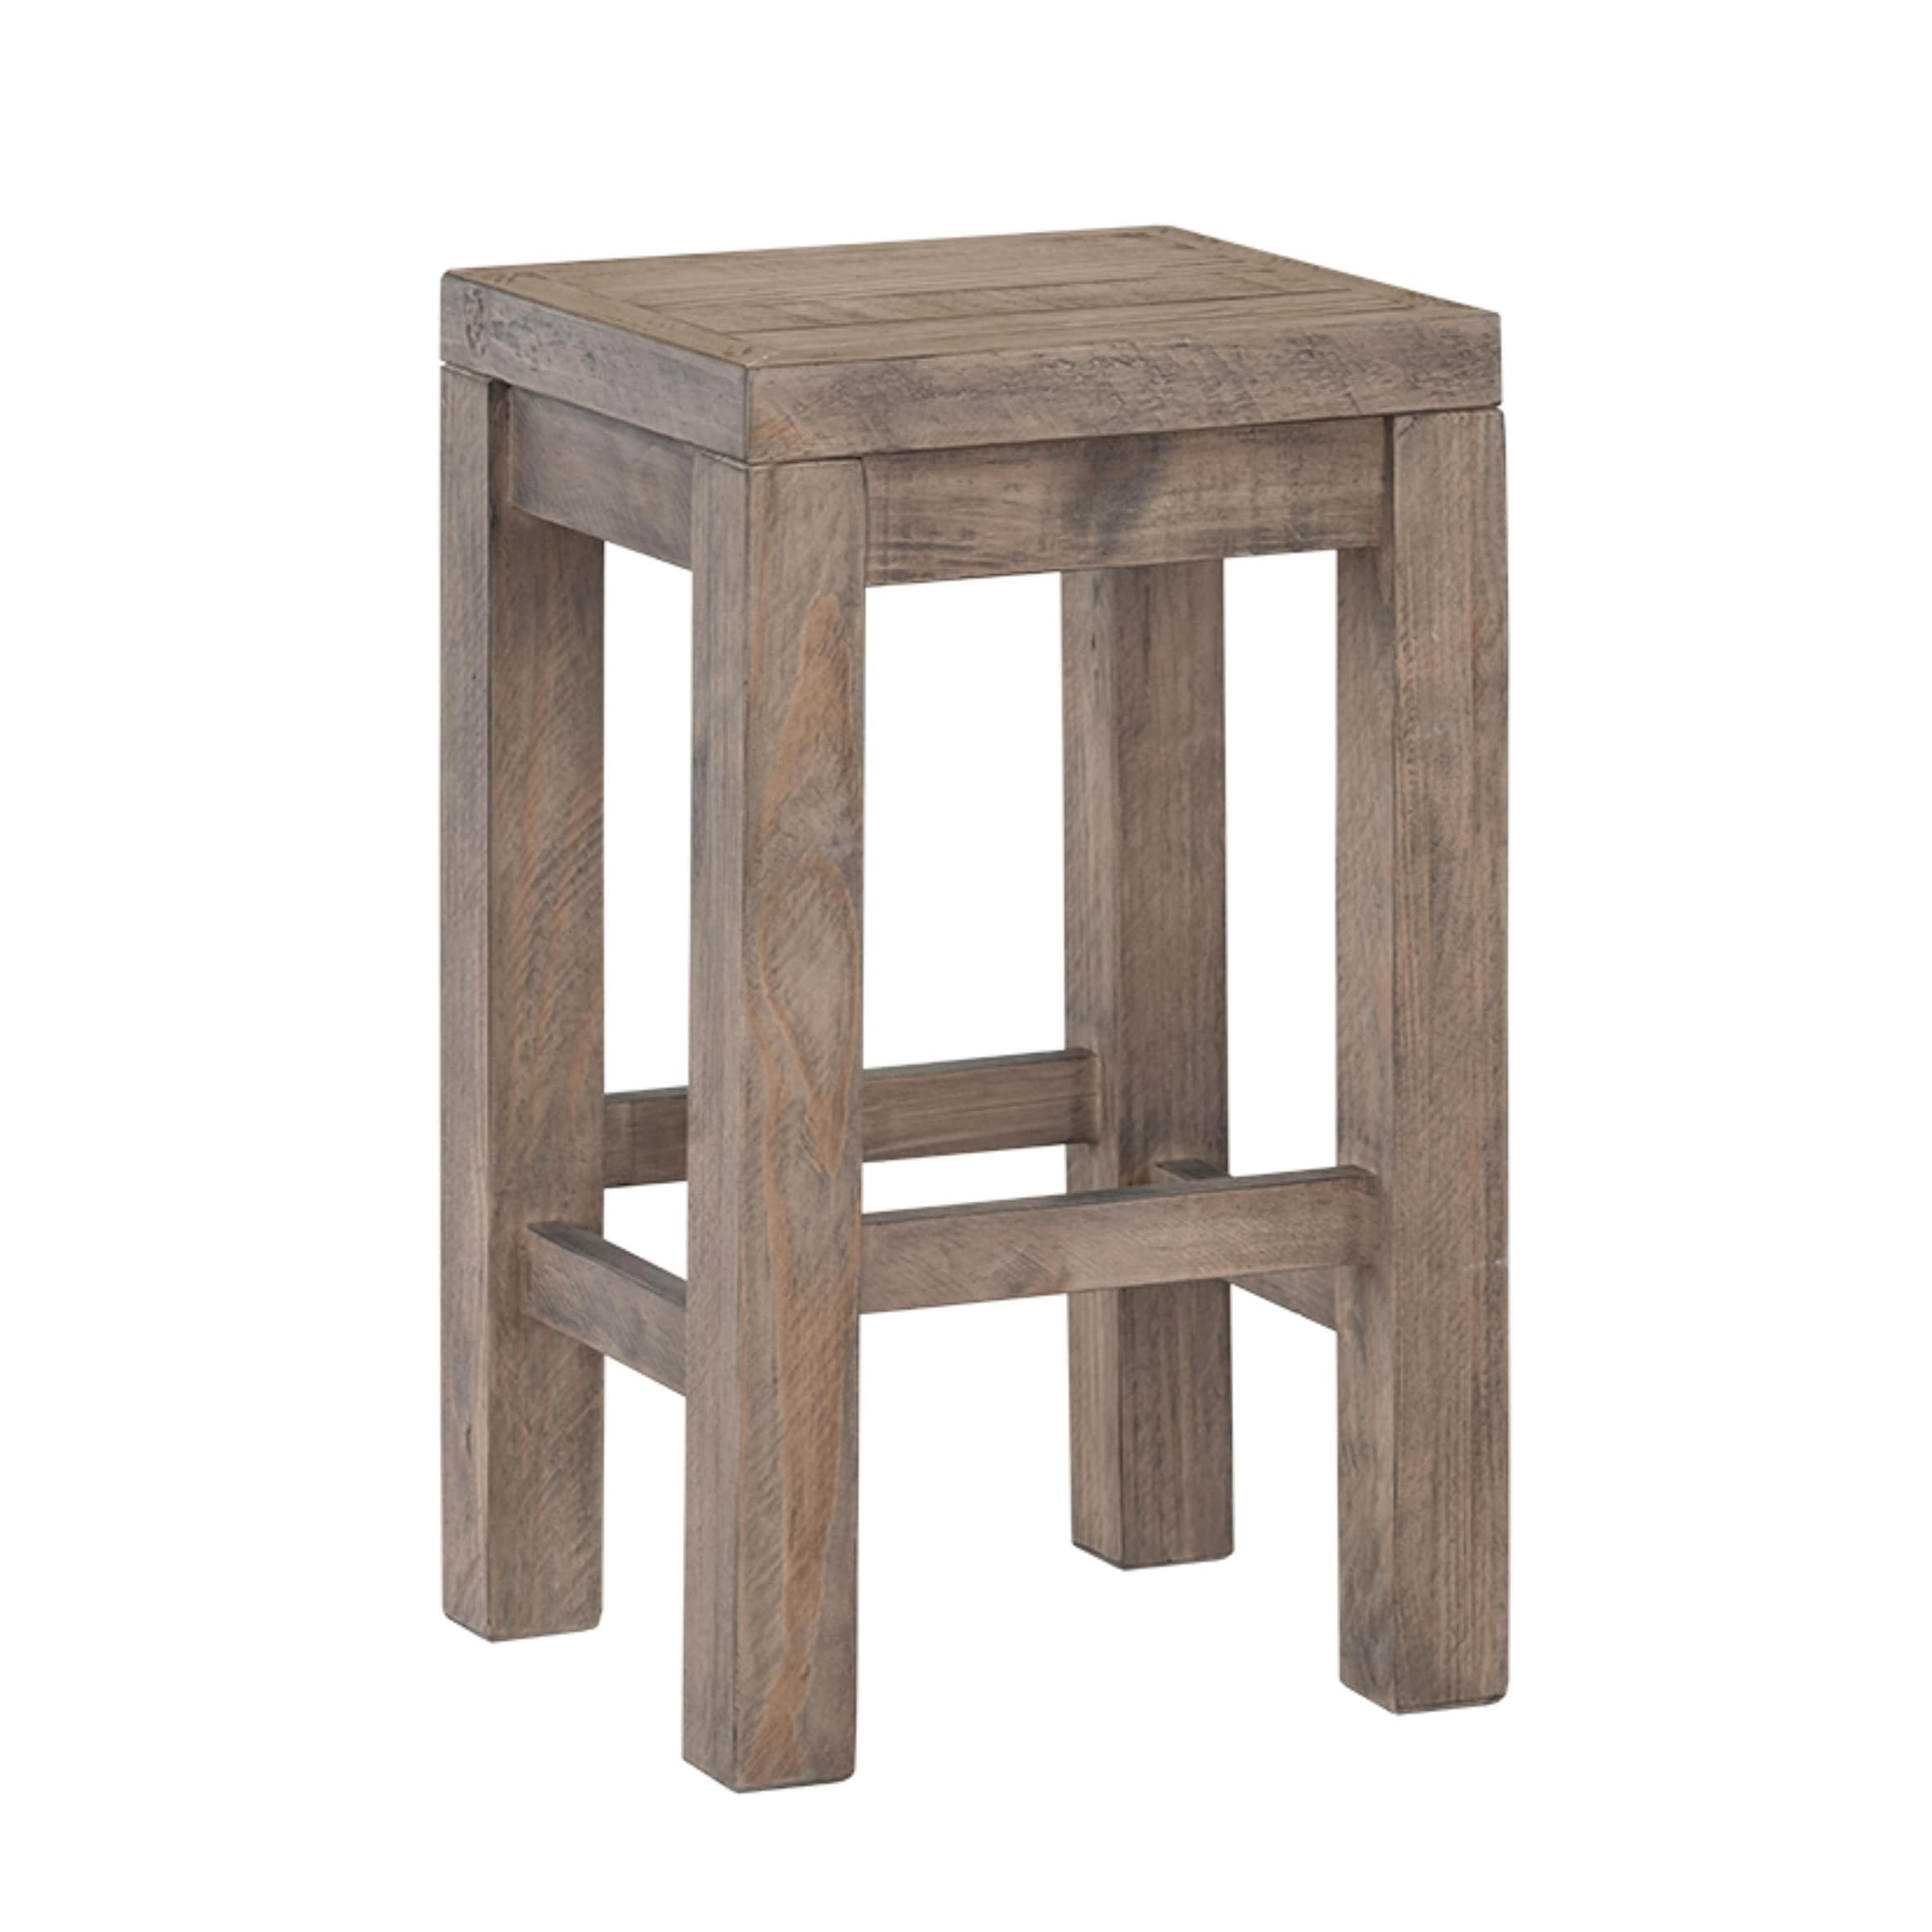 Cortesi Home Stonemill Counter Stool 25 5 In Reclaimed Solid Wood Distressed Light Brown On Sale Overstock 30138241